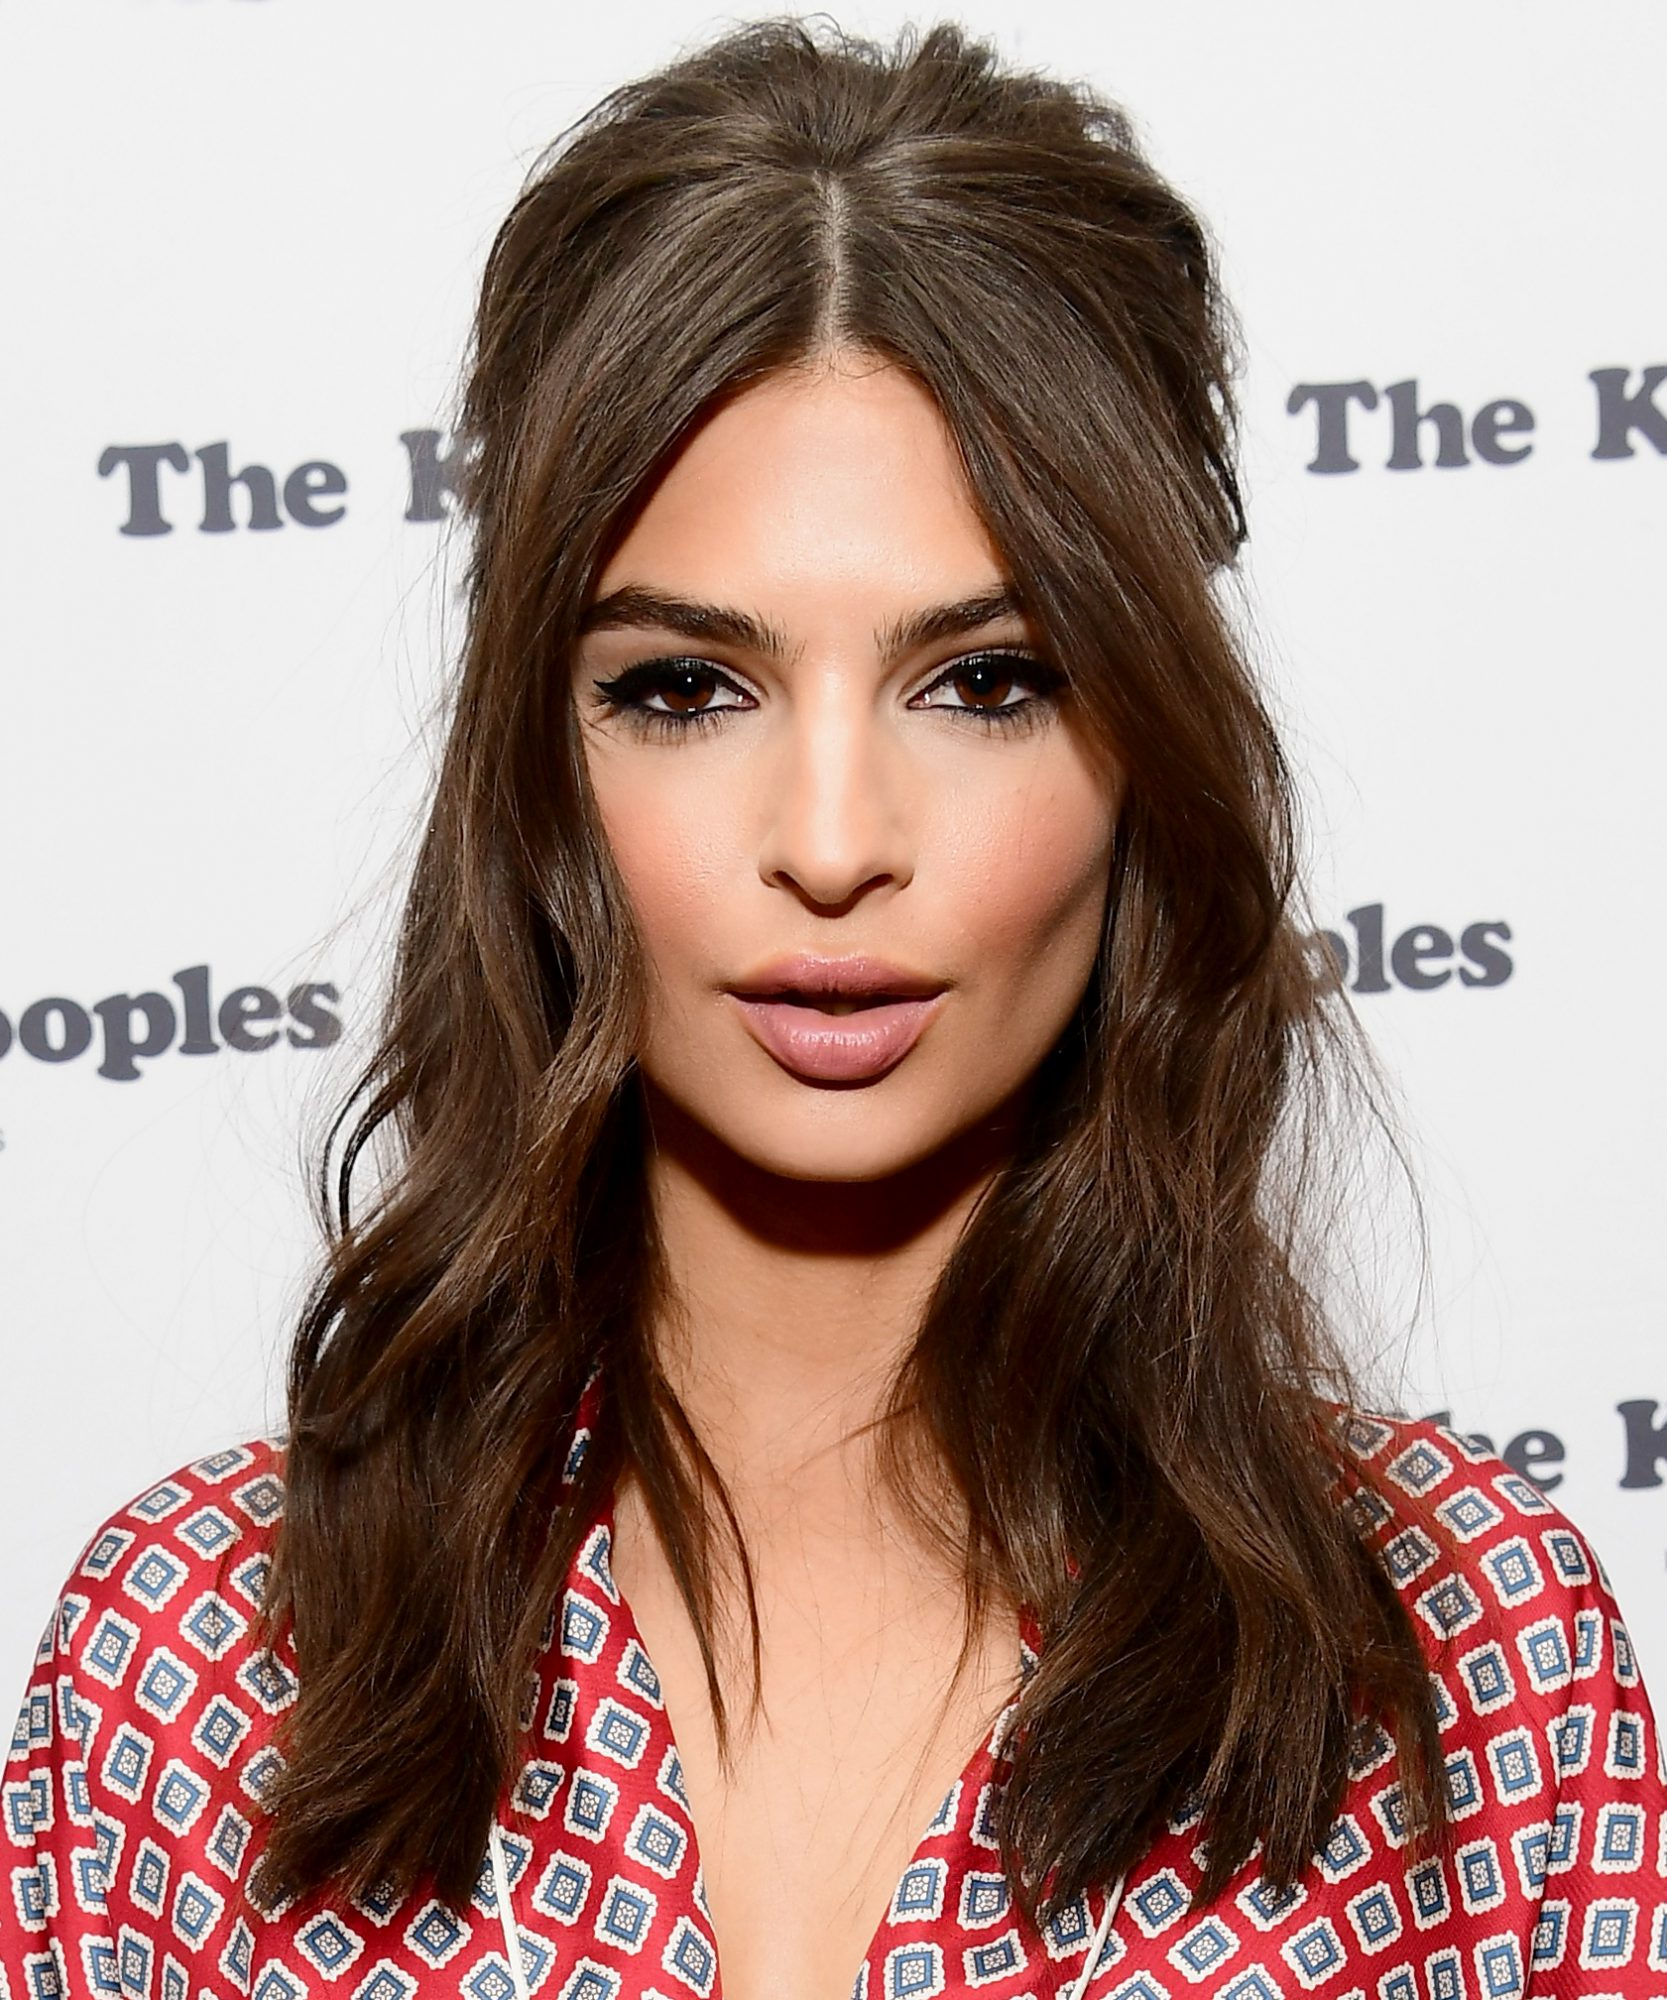 Emily Ratajkowski's Half-Up Half-Down Bouffant